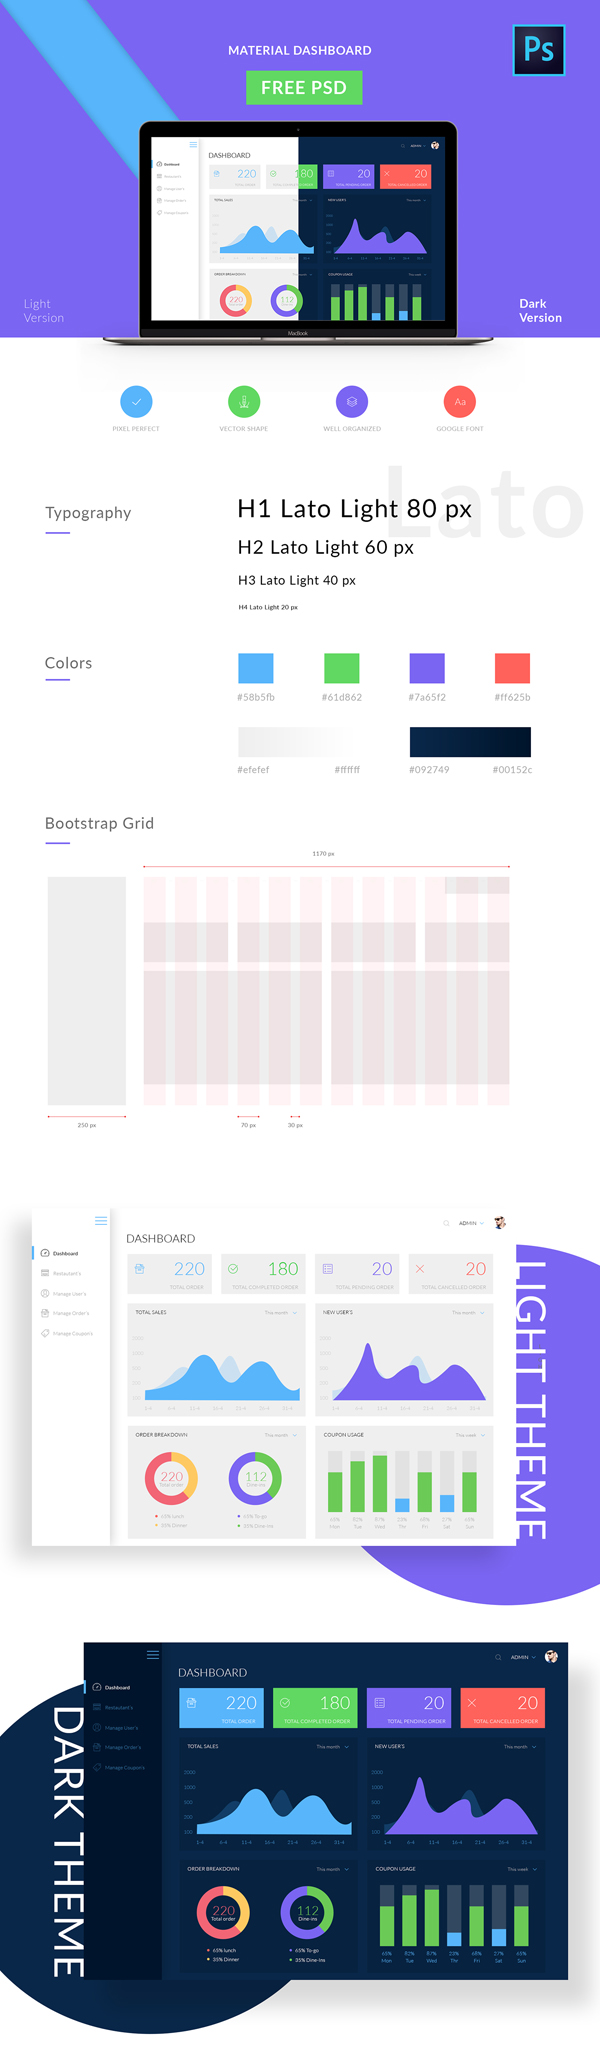 Free Material Dashboard (Light, Dark) UI Templates